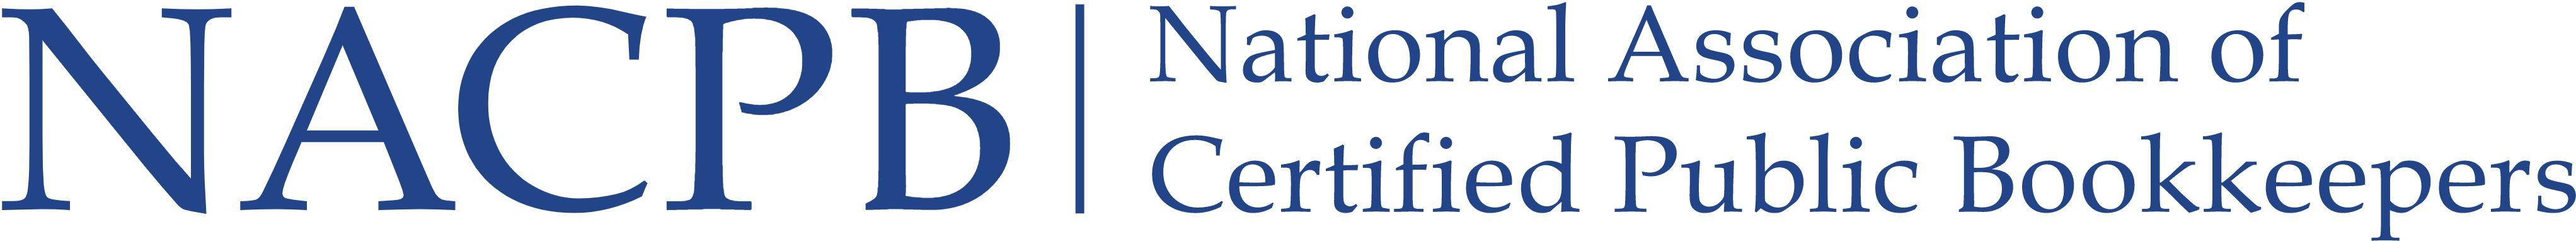 National Association of Certified Public Bookkeepers